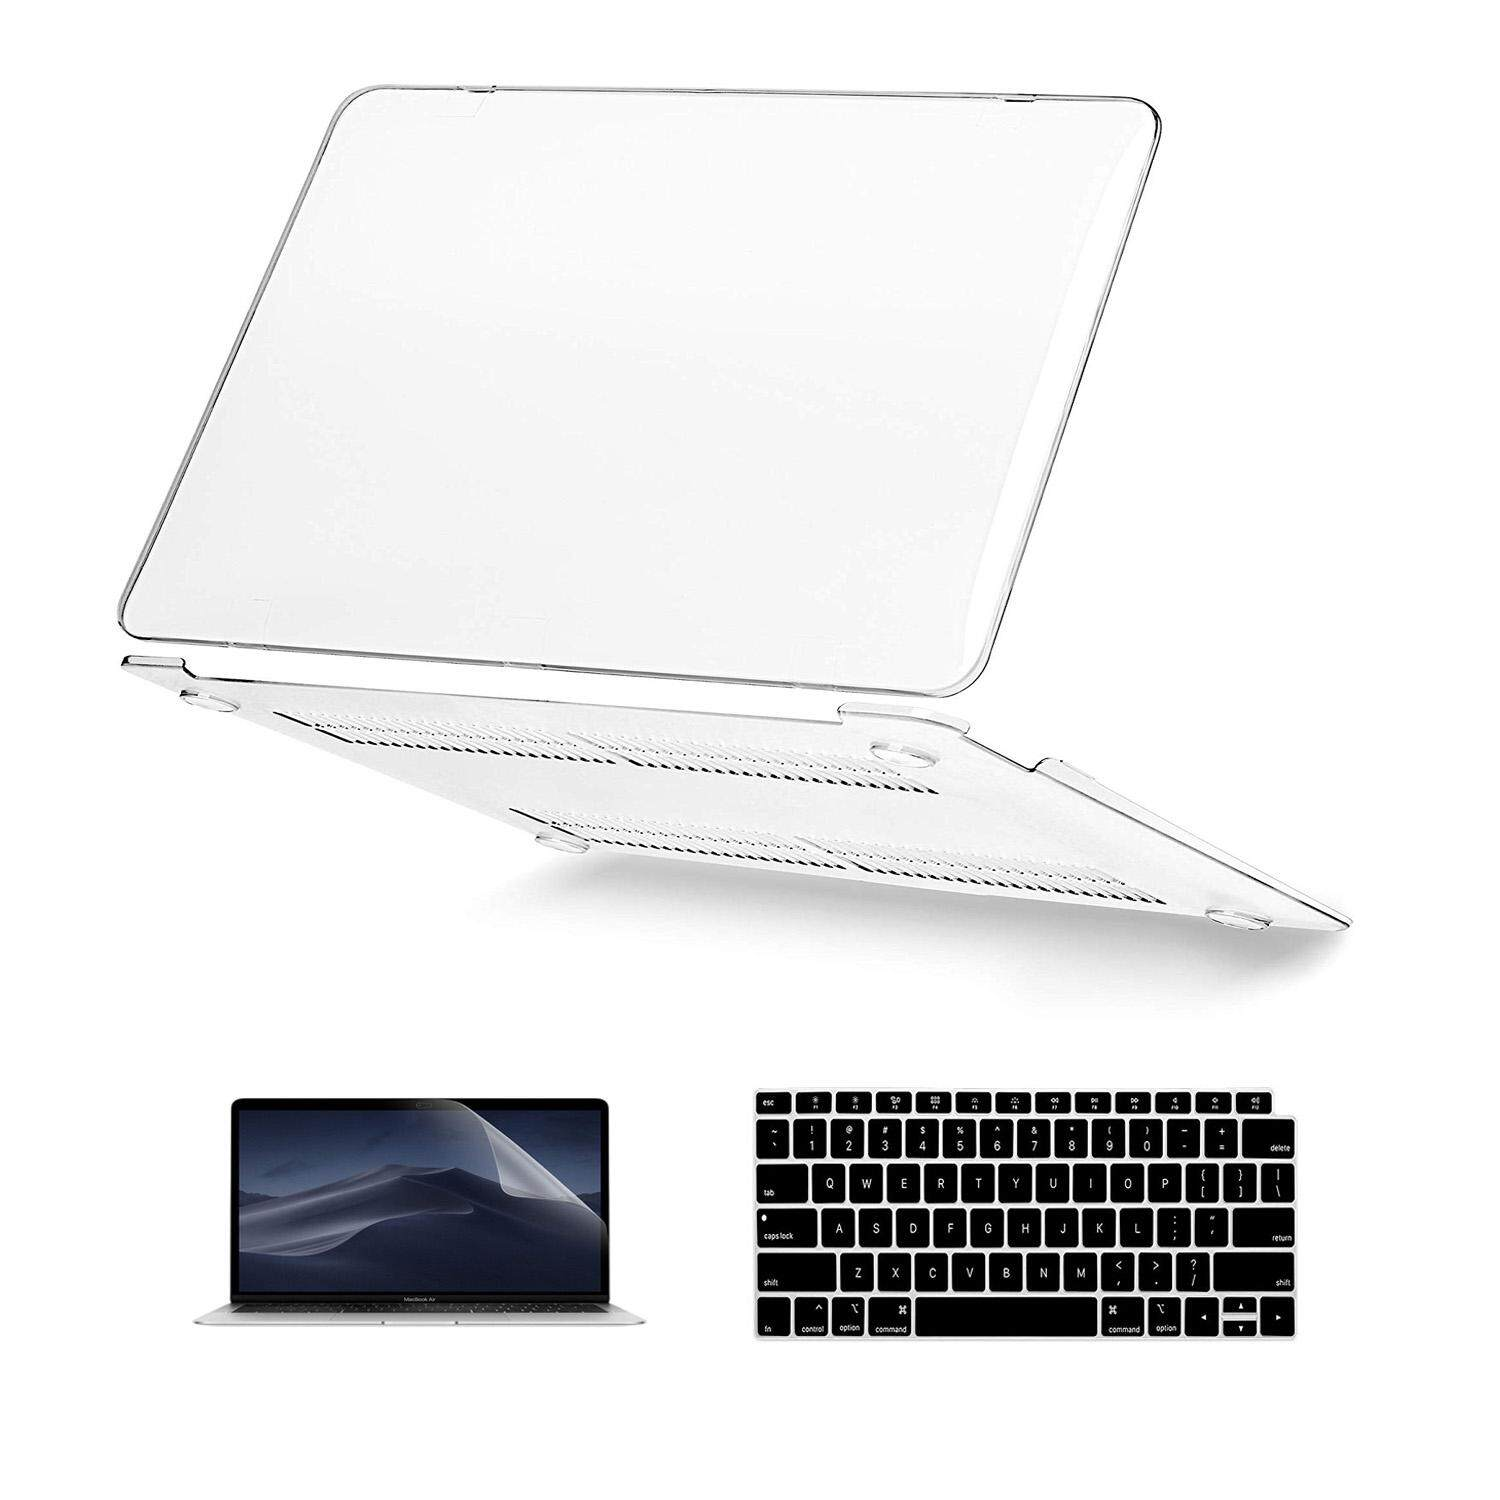 New MacBook Air 13 Inch Case 2018 Release A1932, Welink 3 in 1 Smooth Matte Frosted Hard Shell Cover Screen Protector and Keyboard Cover for Apple MacBook Air 13 Inch with Retina Display fits Touch ID